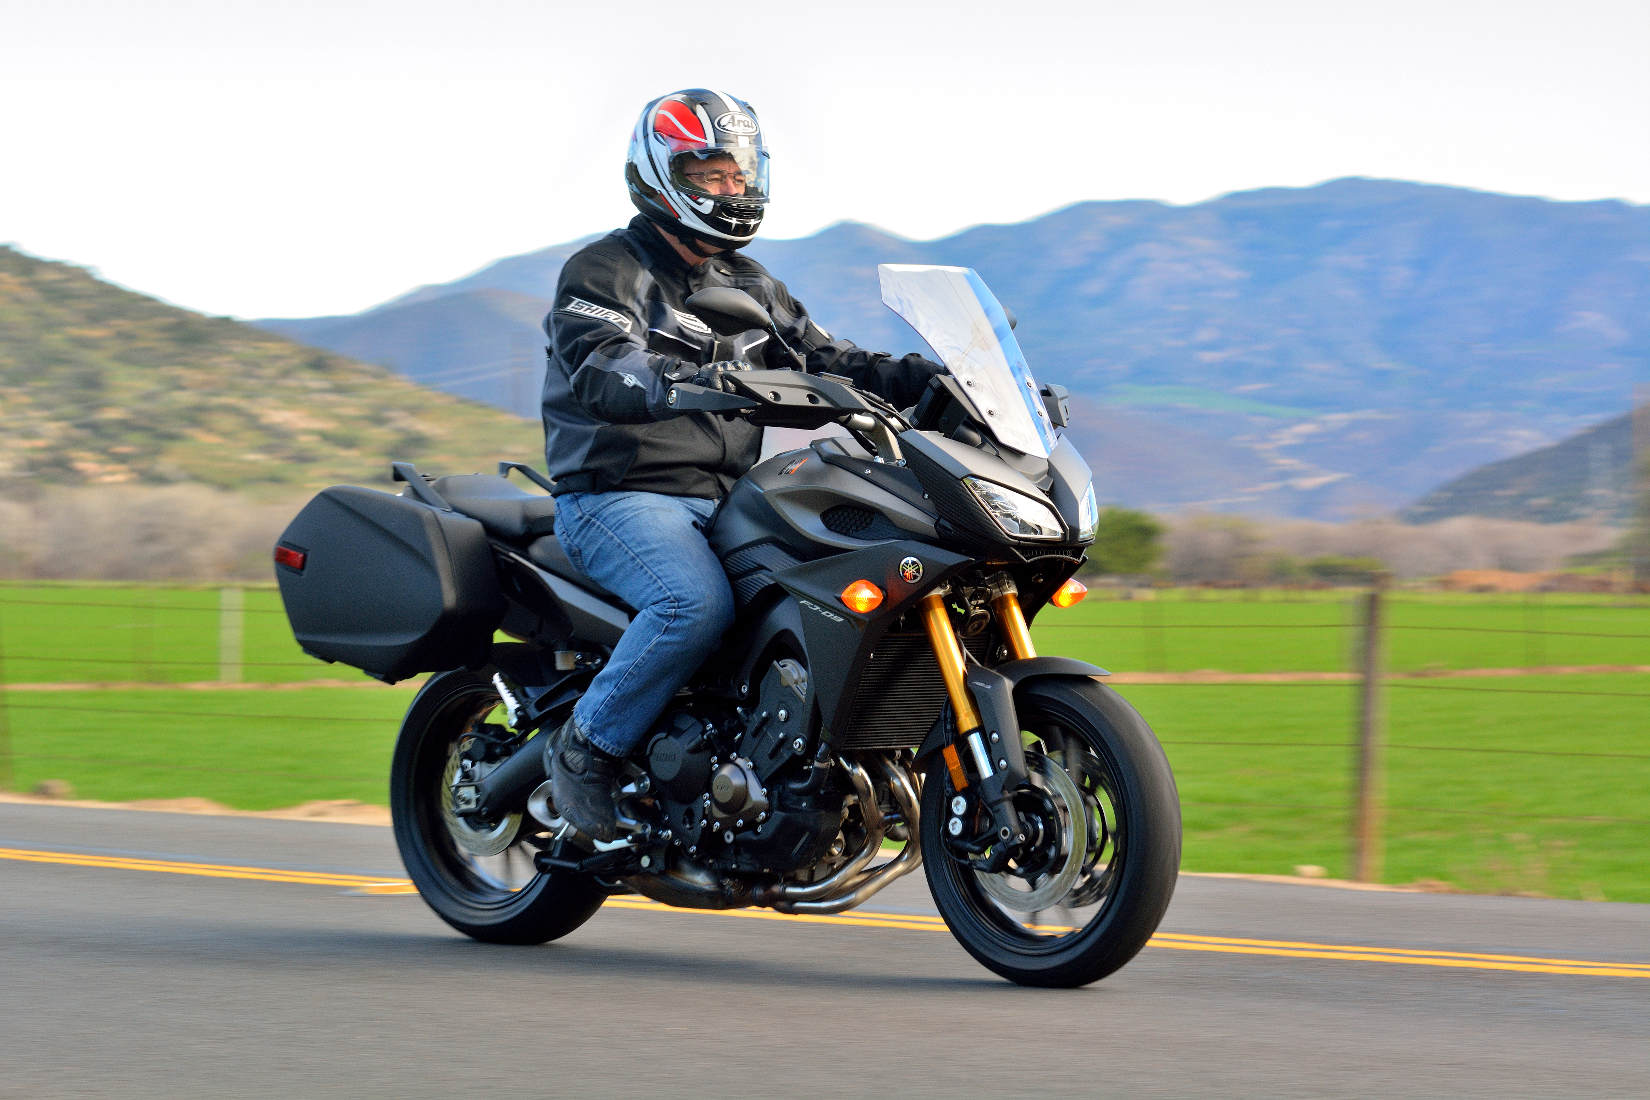 2015 Yamaha FJ-09: MD Ride Review, Part Two